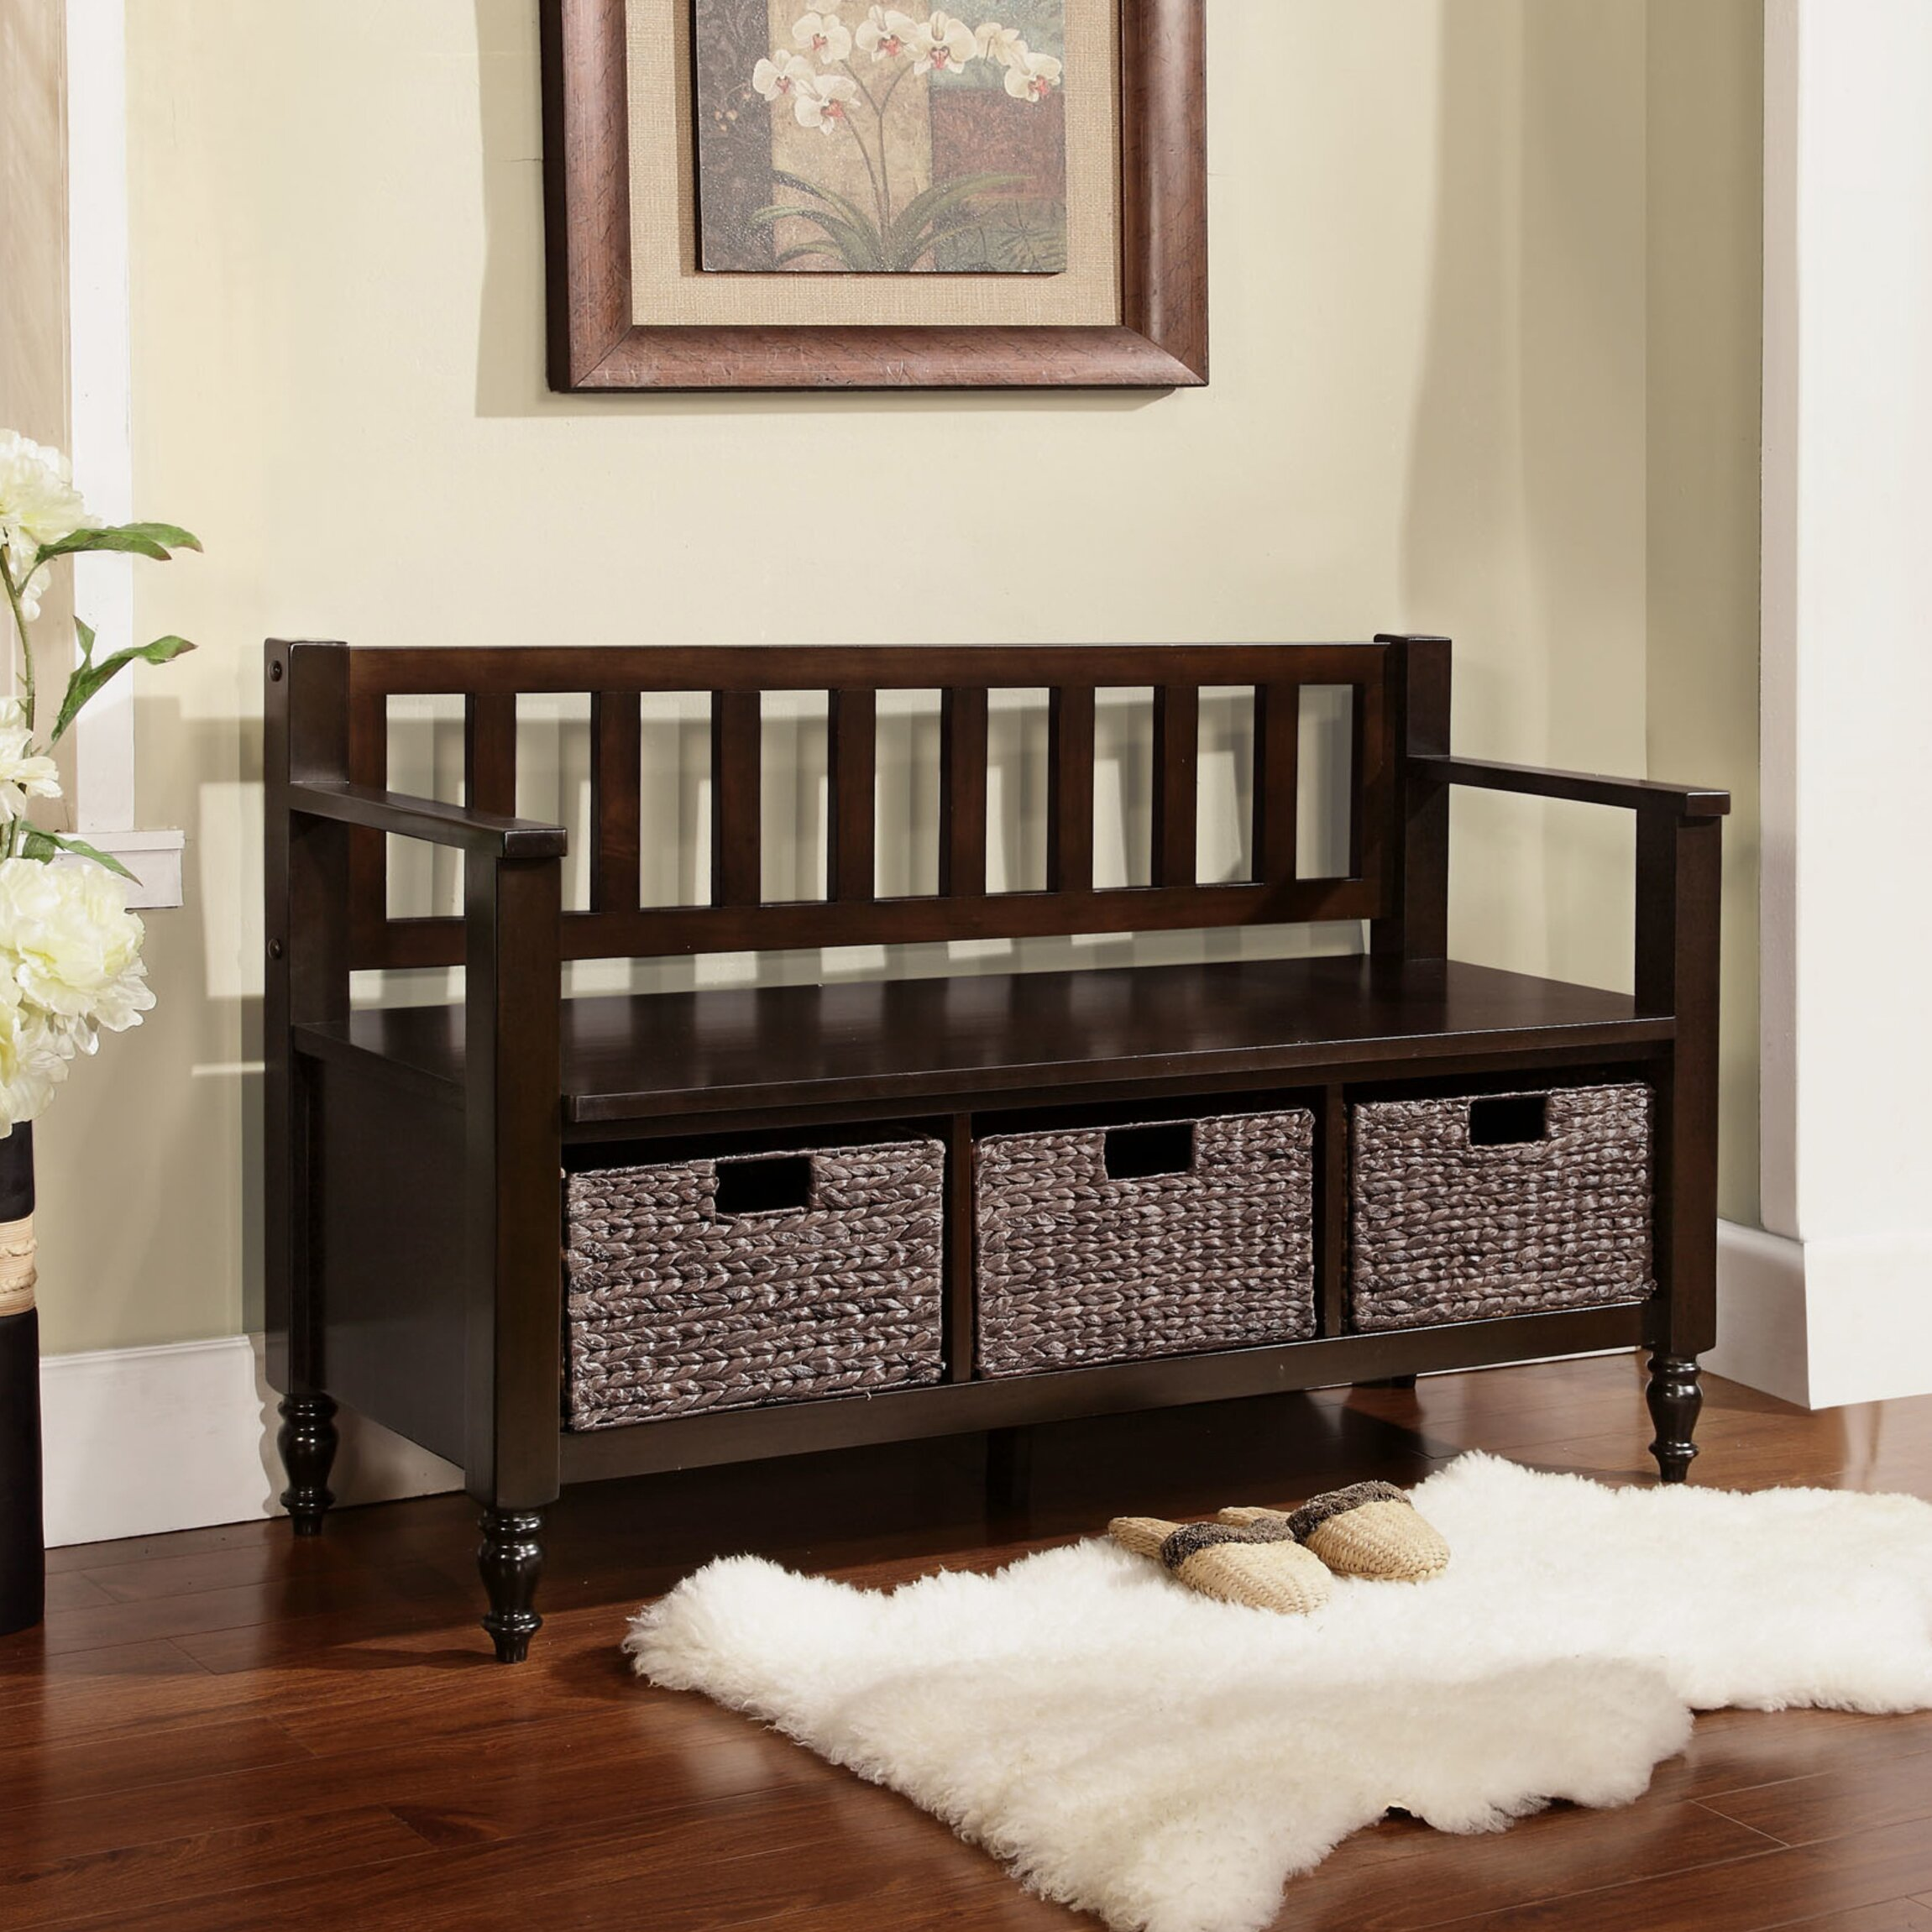 Buy Foyer Bench : Simpli home dakota entryway bench reviews wayfair